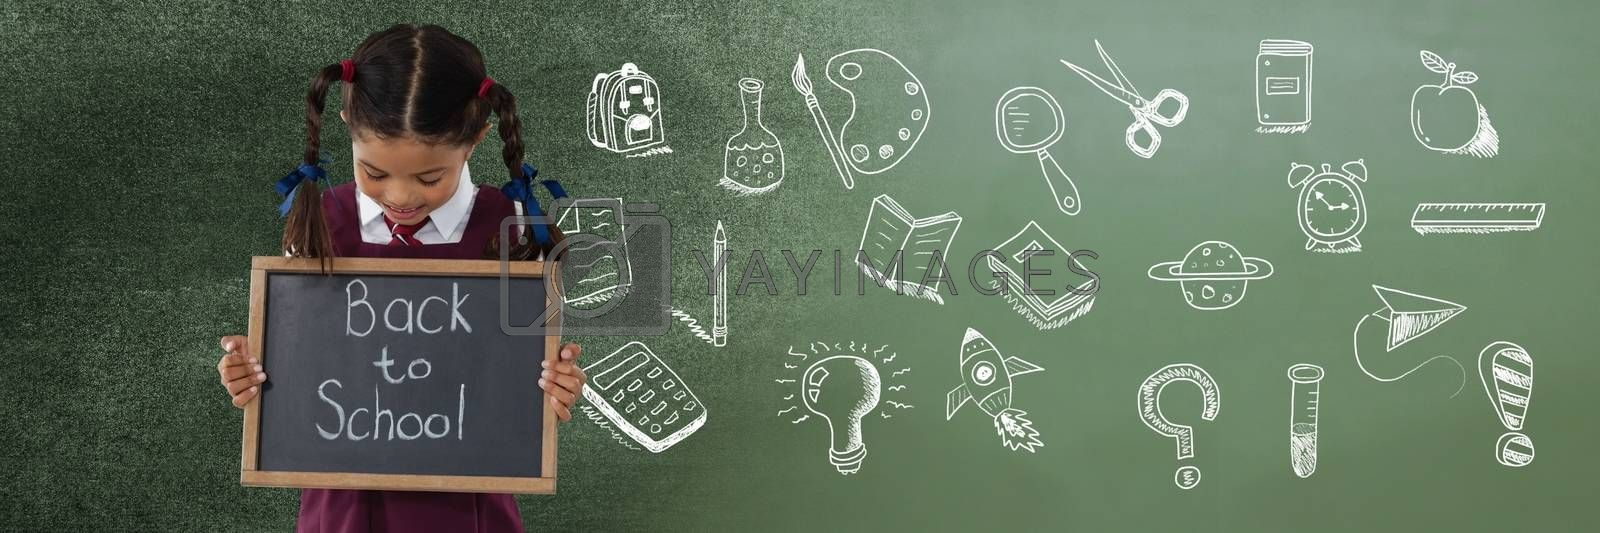 Digital composite of Back to School writing with School girl and Education drawing on blackboard for school